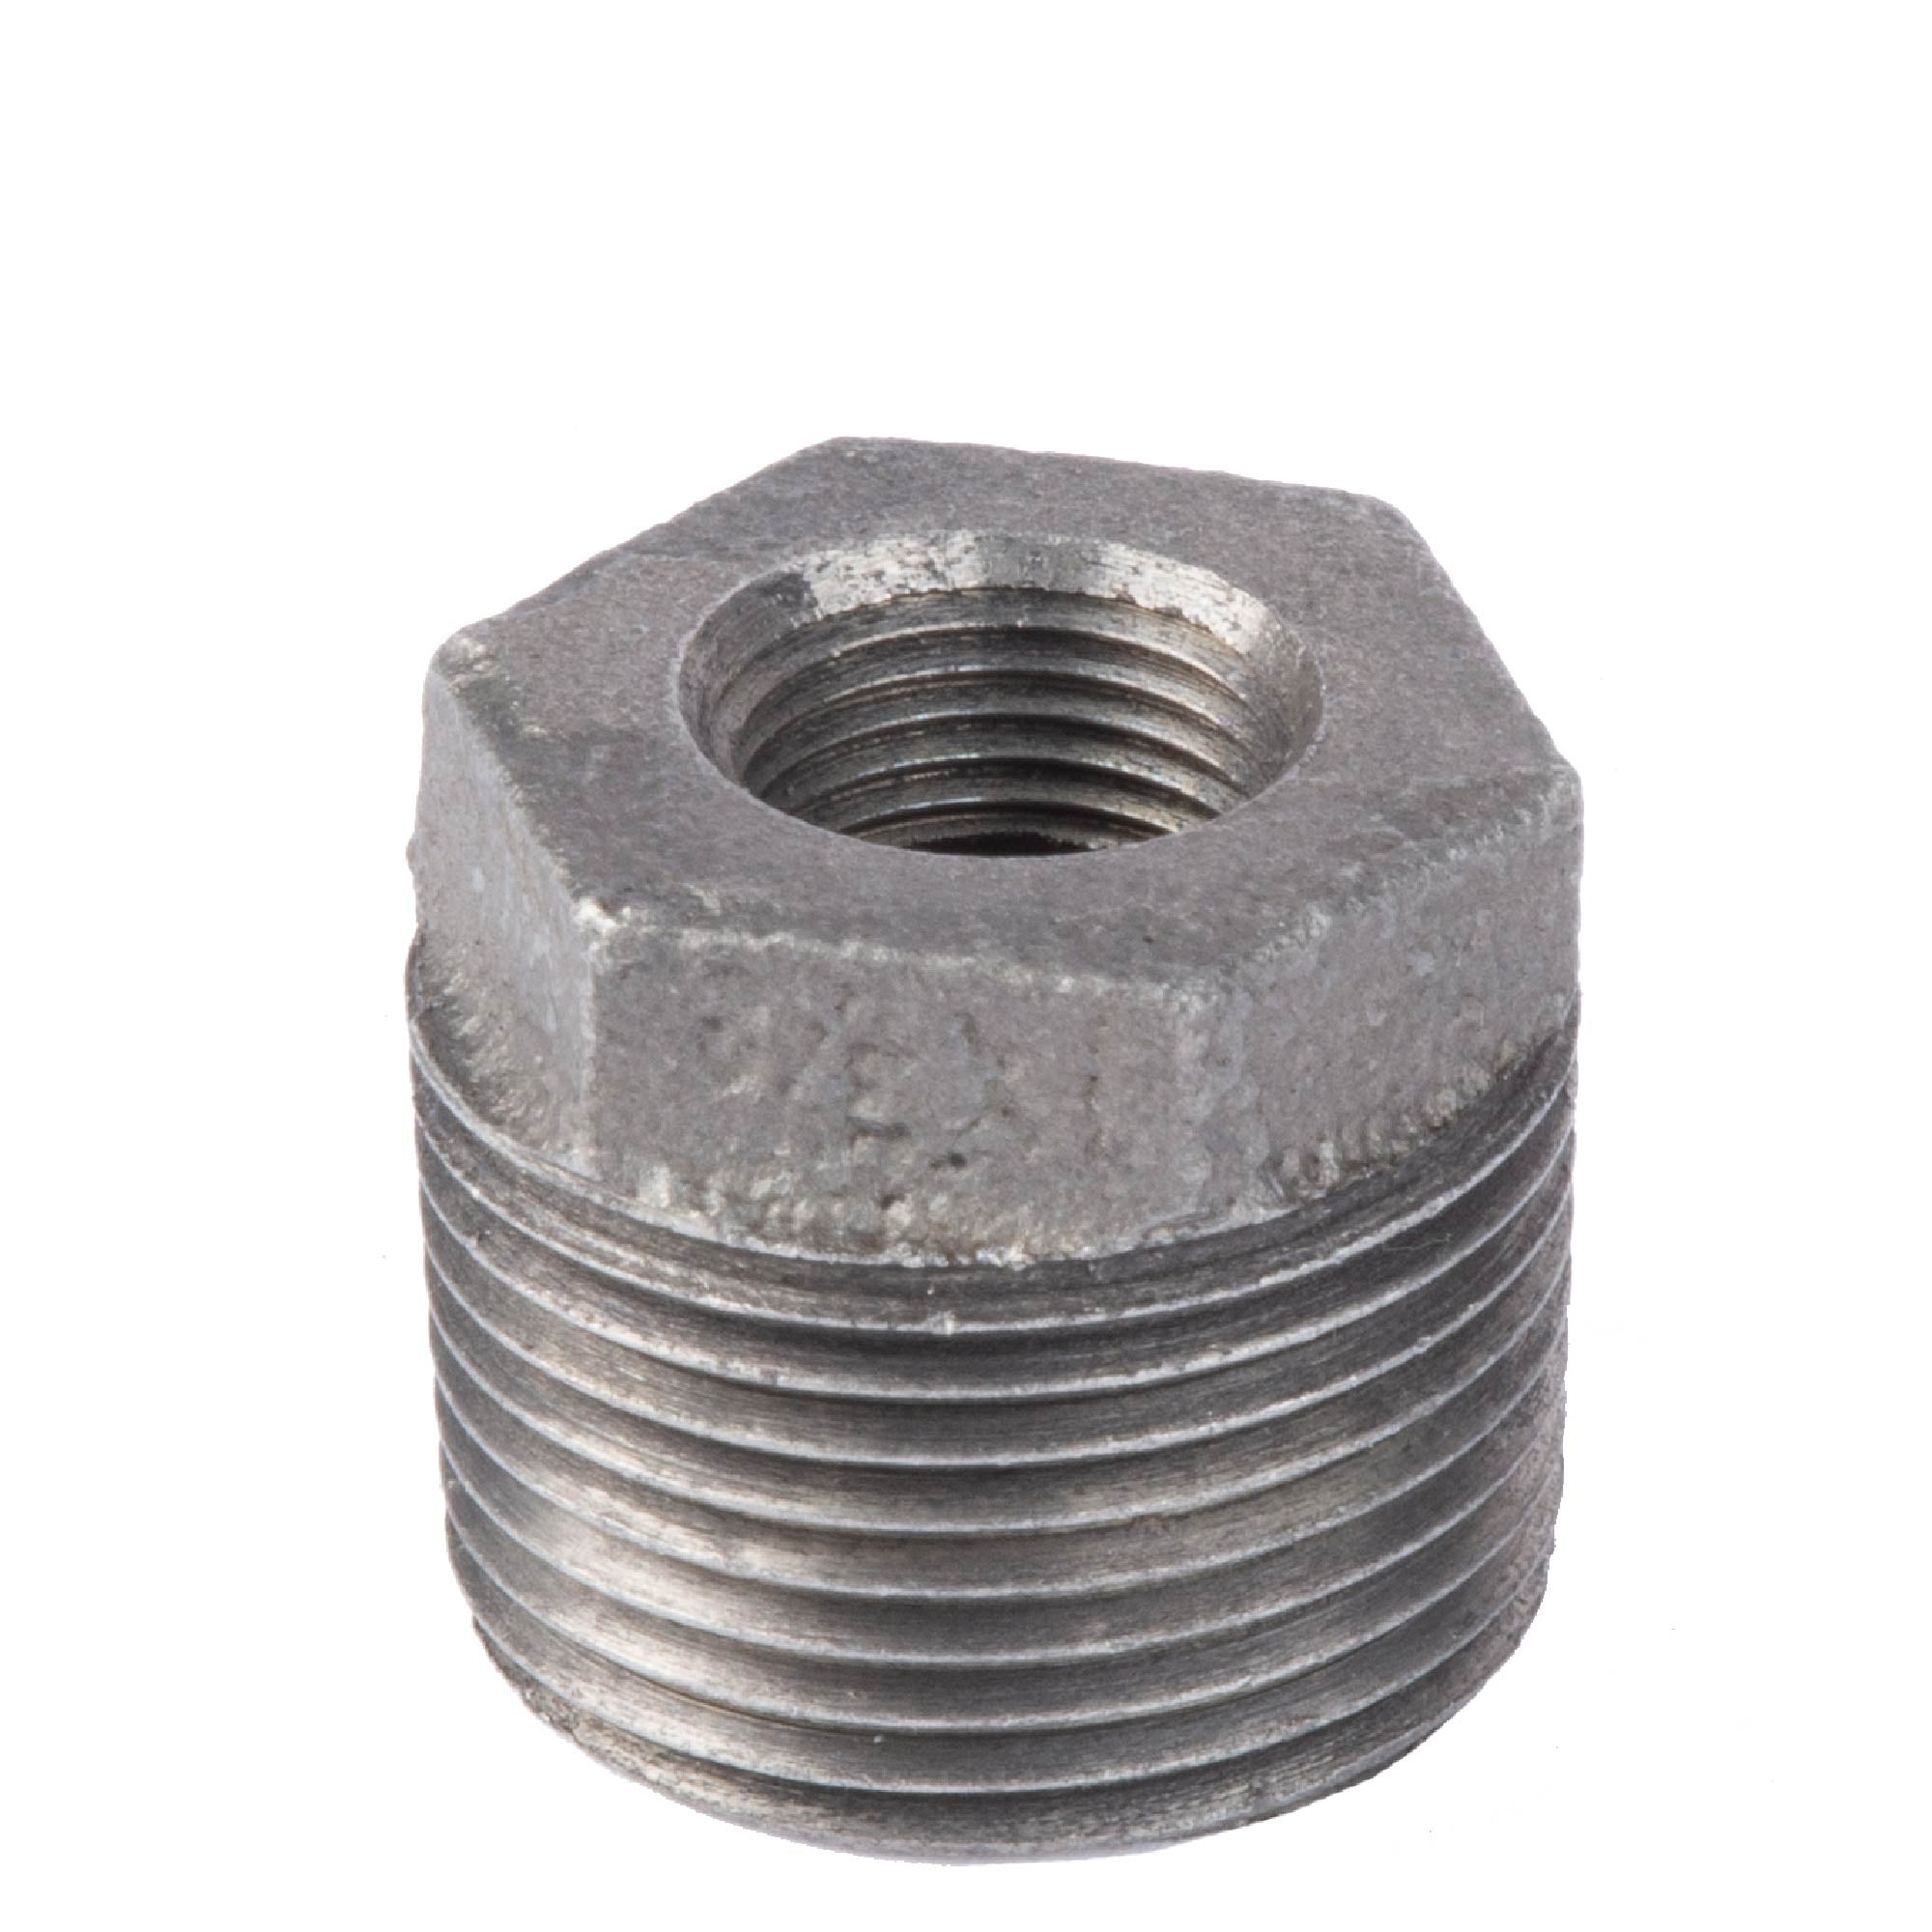 1 IN X 3/8 IN BUSHING